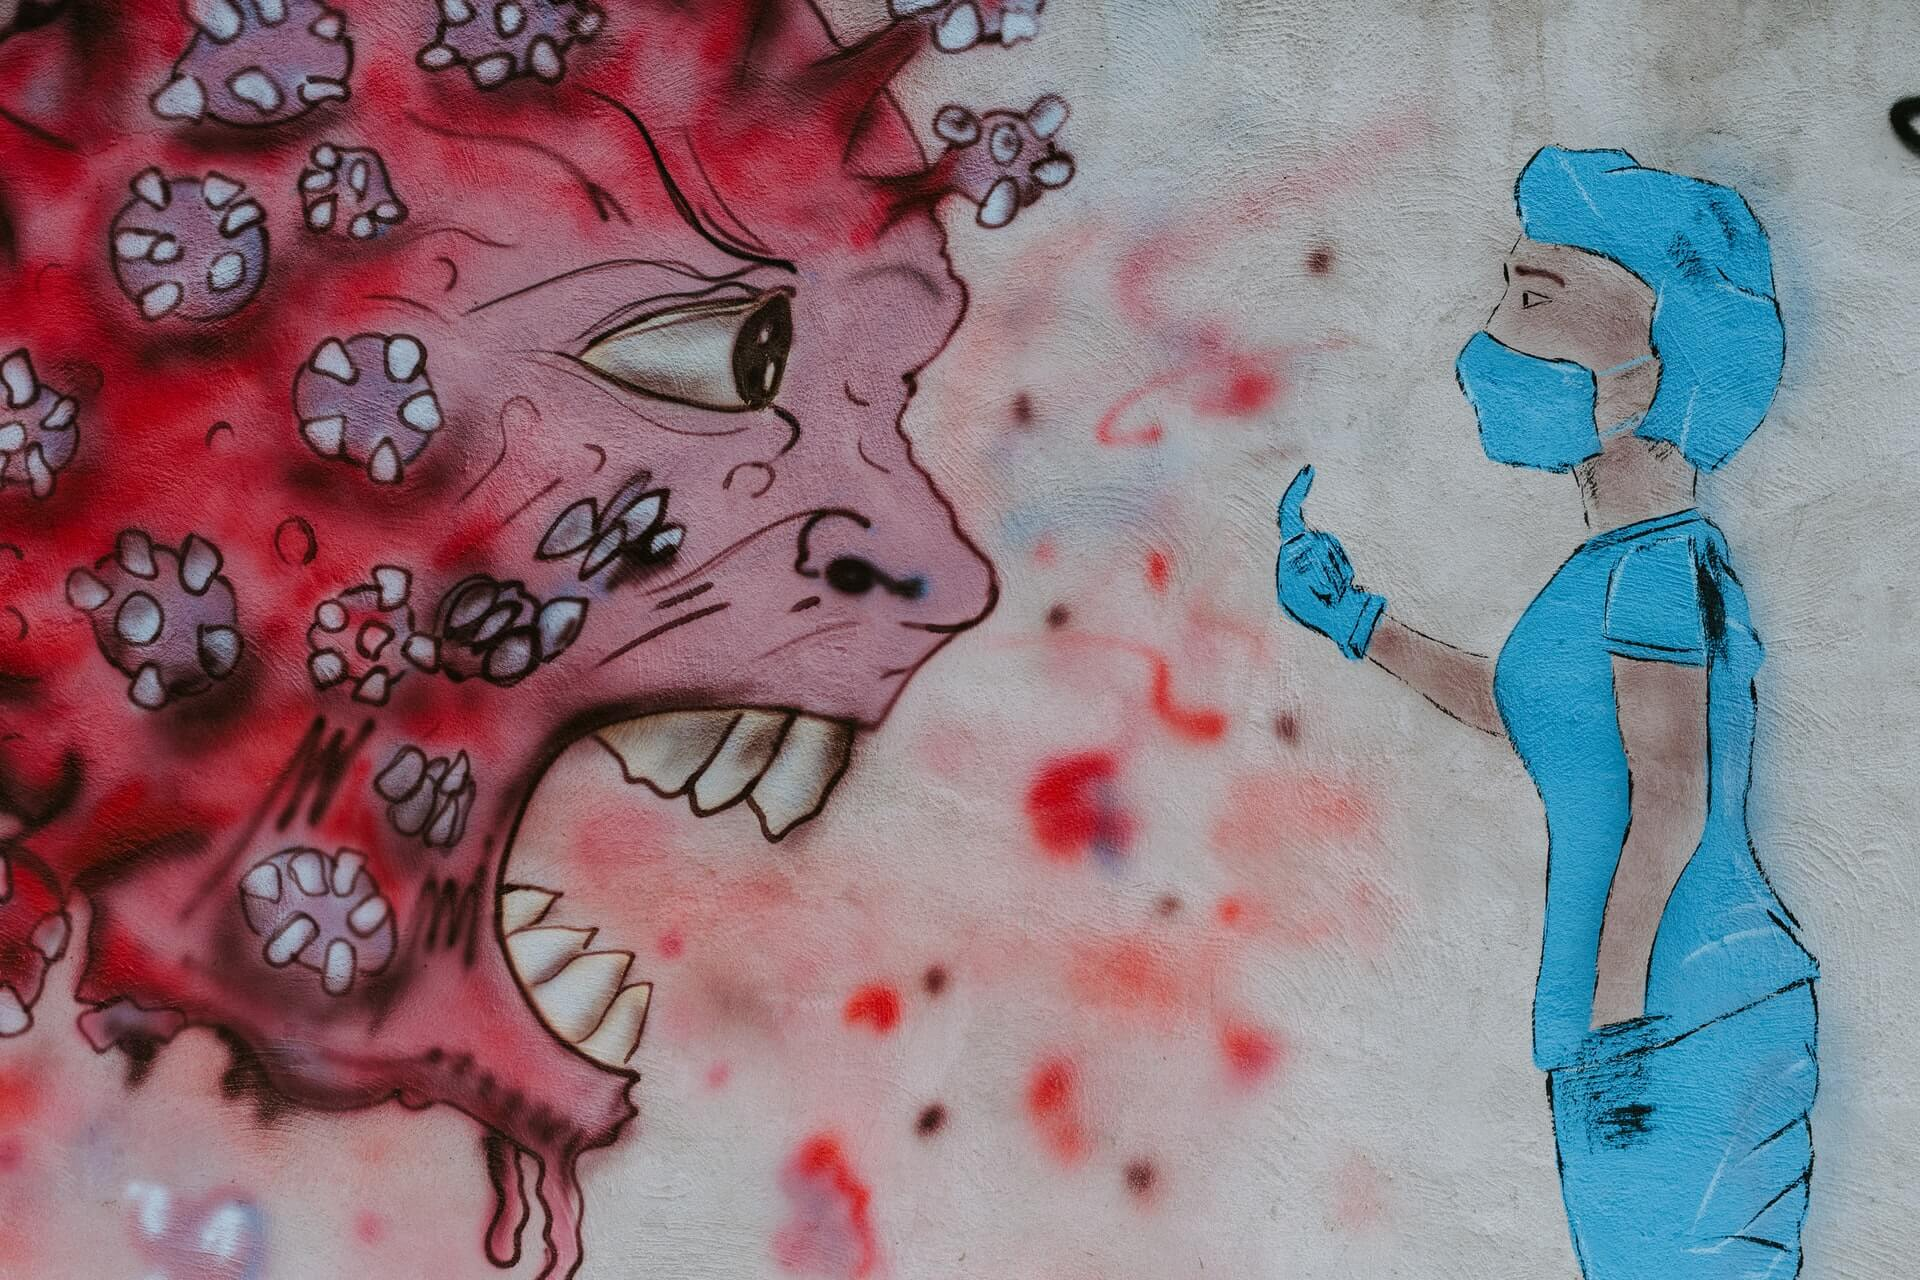 Street art portraying a frontline worker flipping off a COVID virus